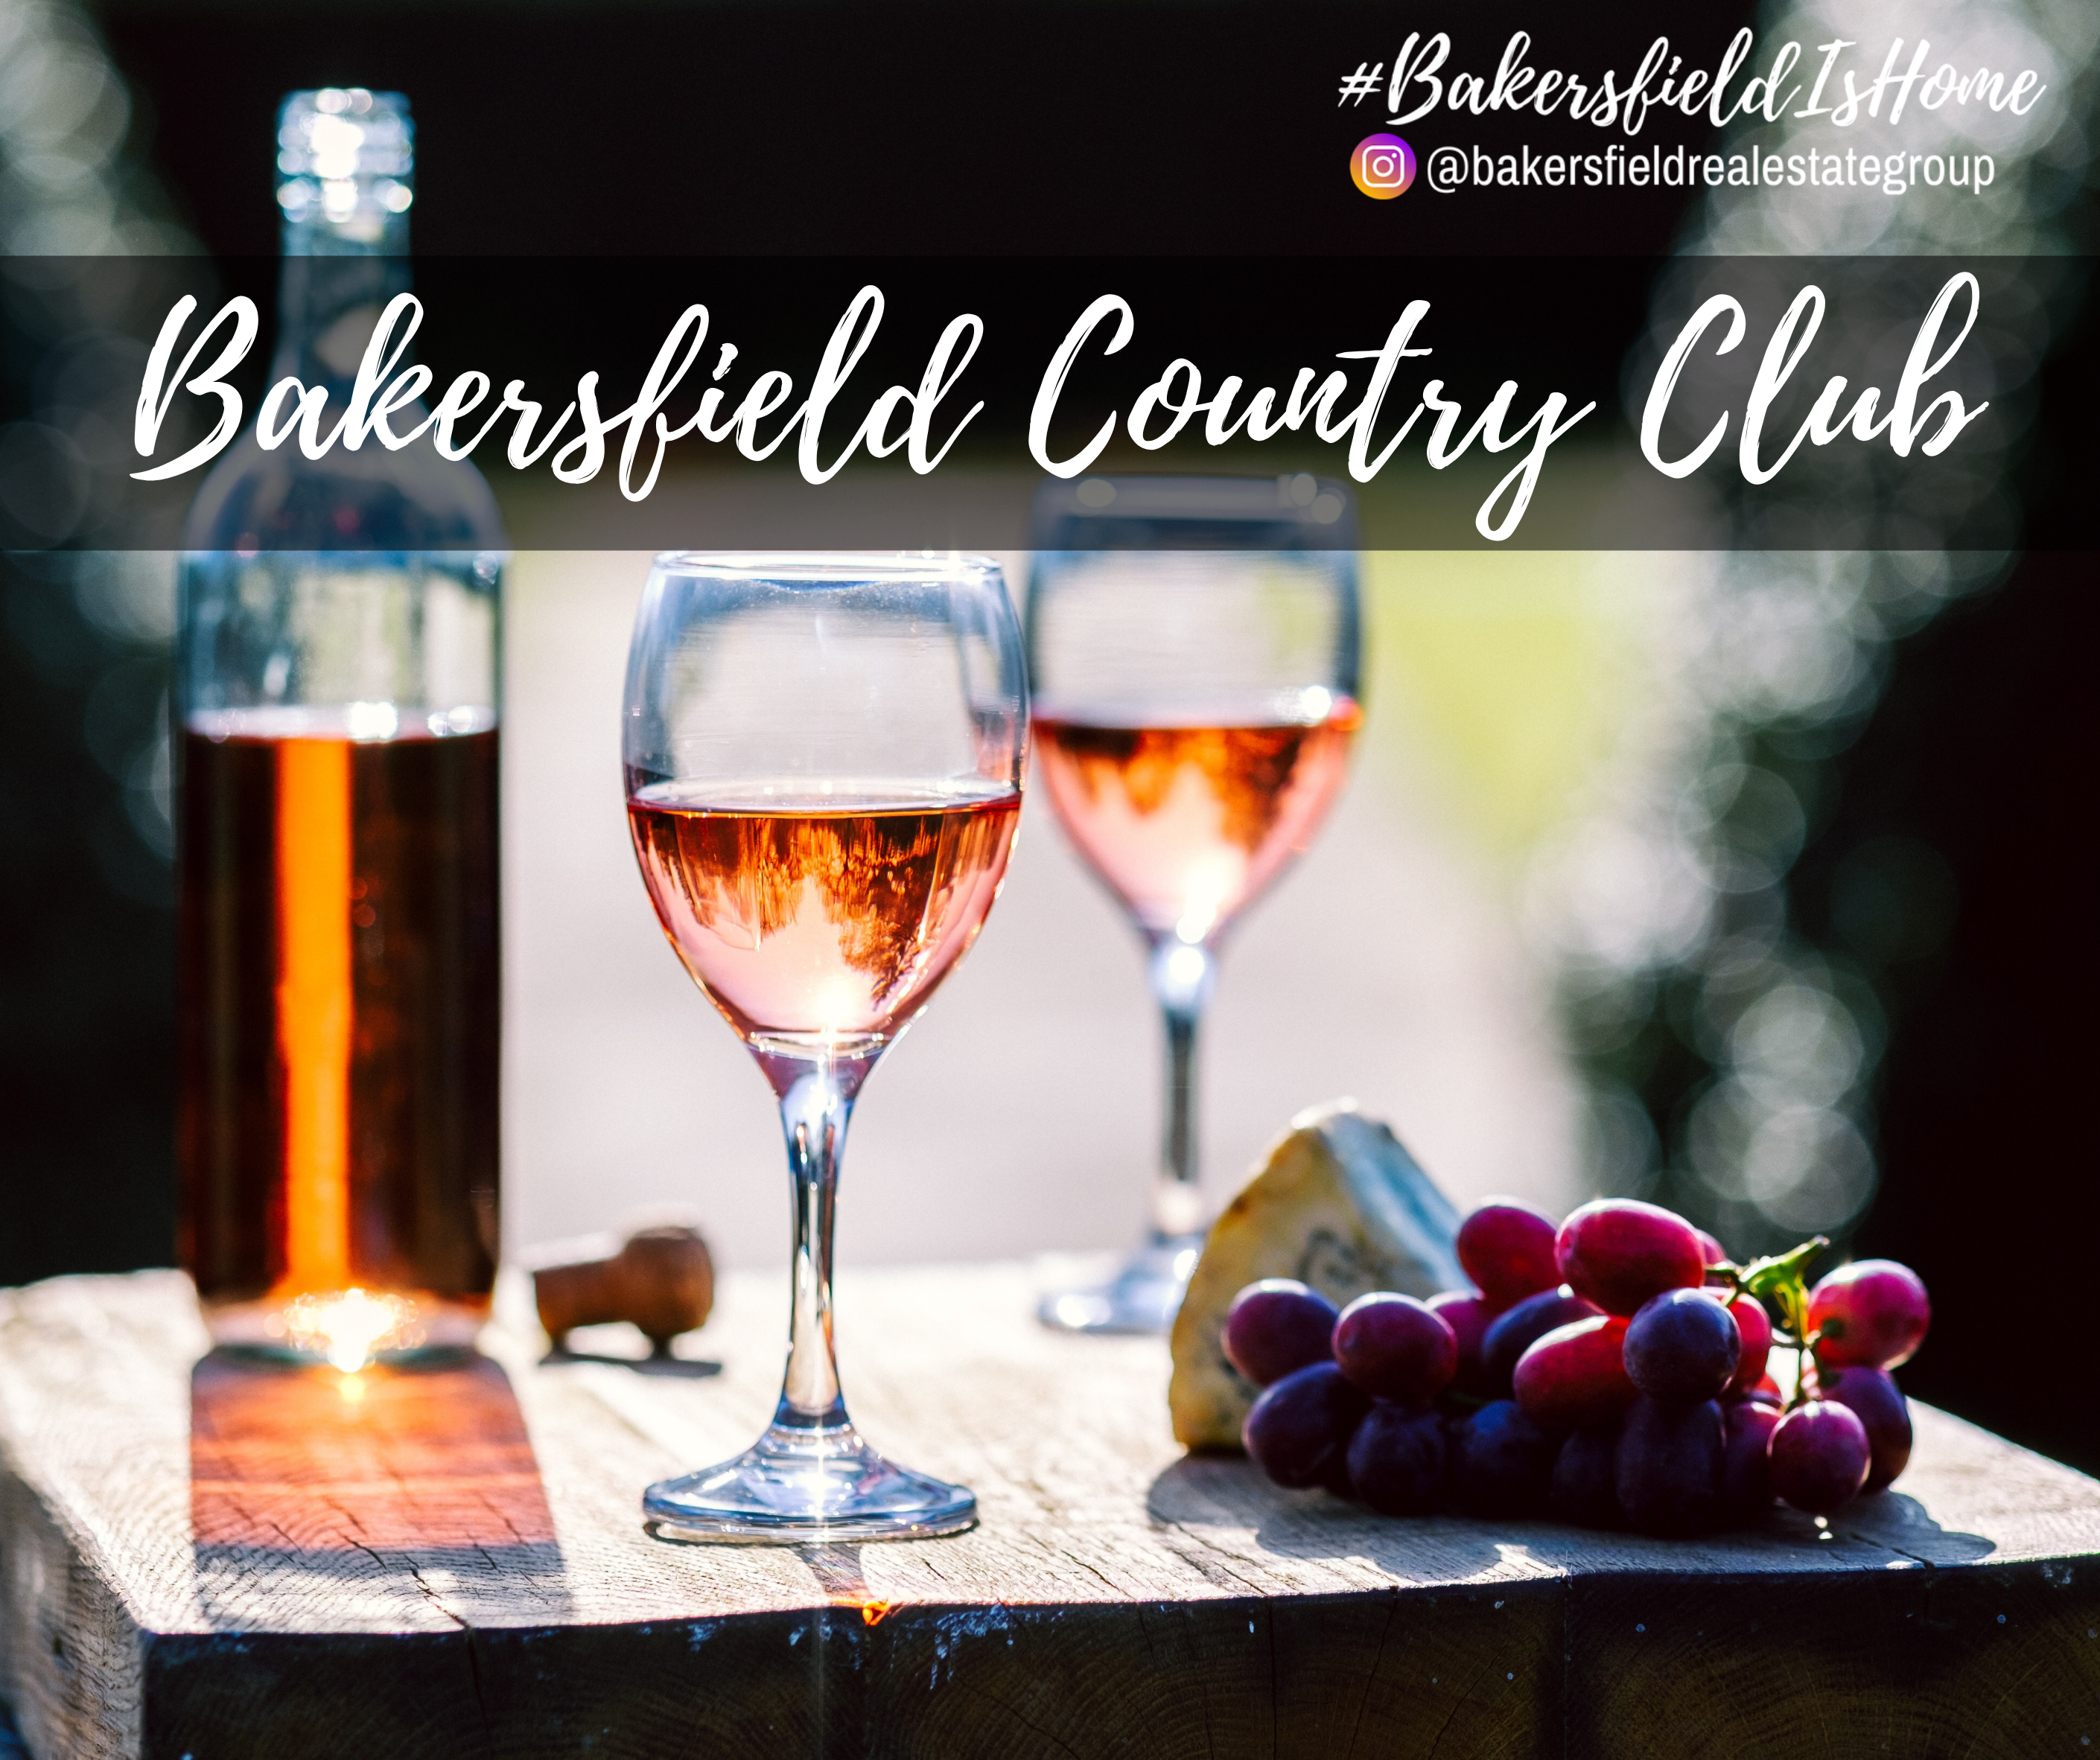 Homes For Sale in Bakersfield Country Club - Linda Banales 661-303-5401